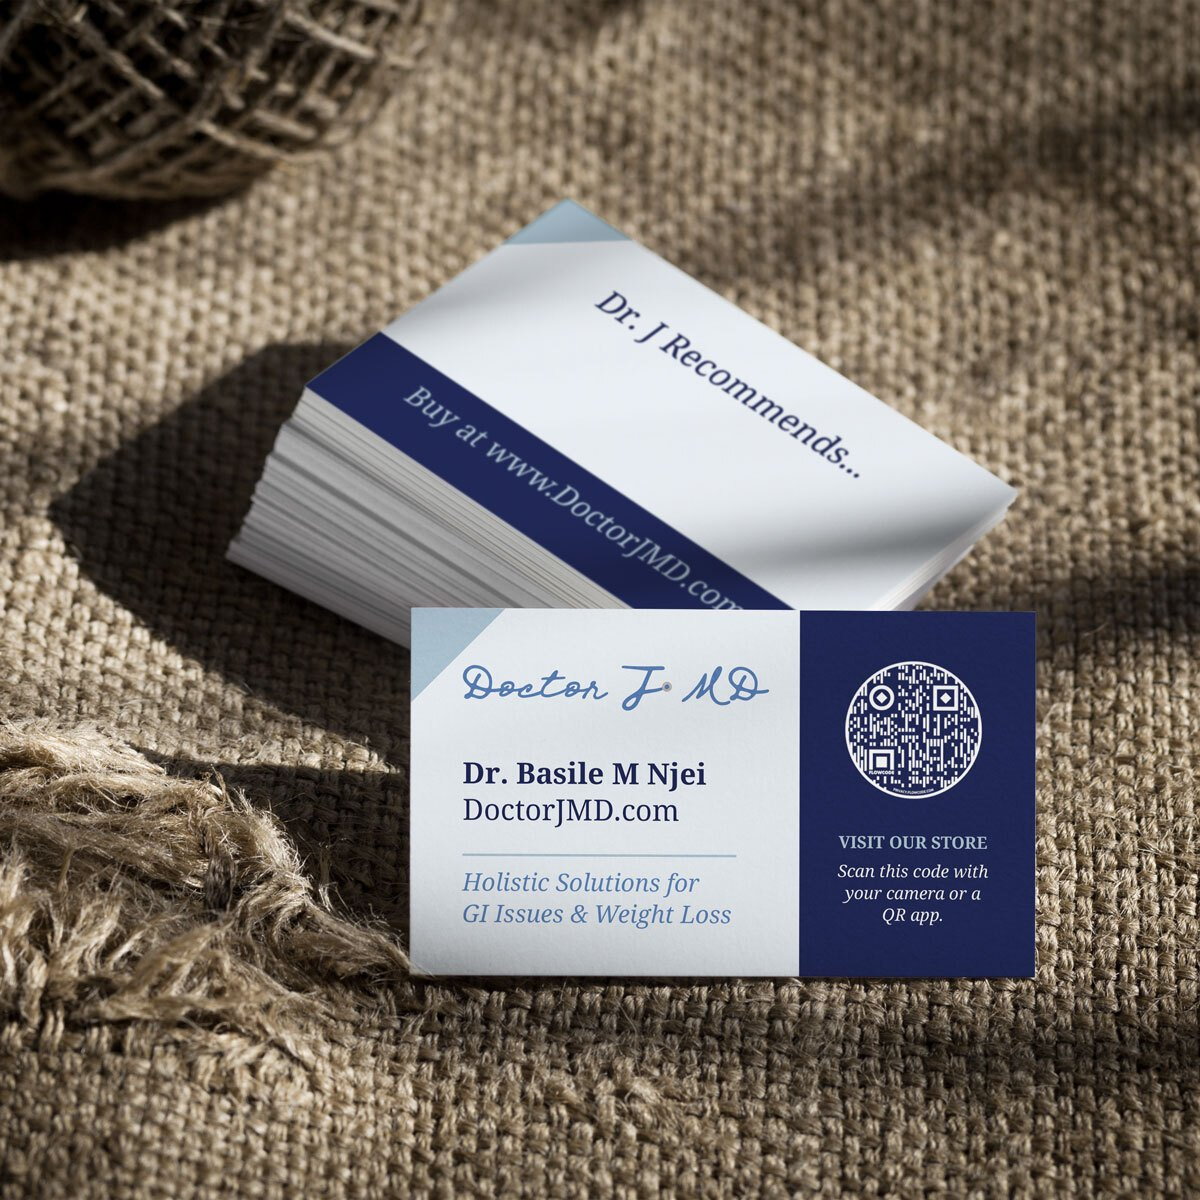 Doctor J MD Business Cards Design by BrandSwan, a graphic design company